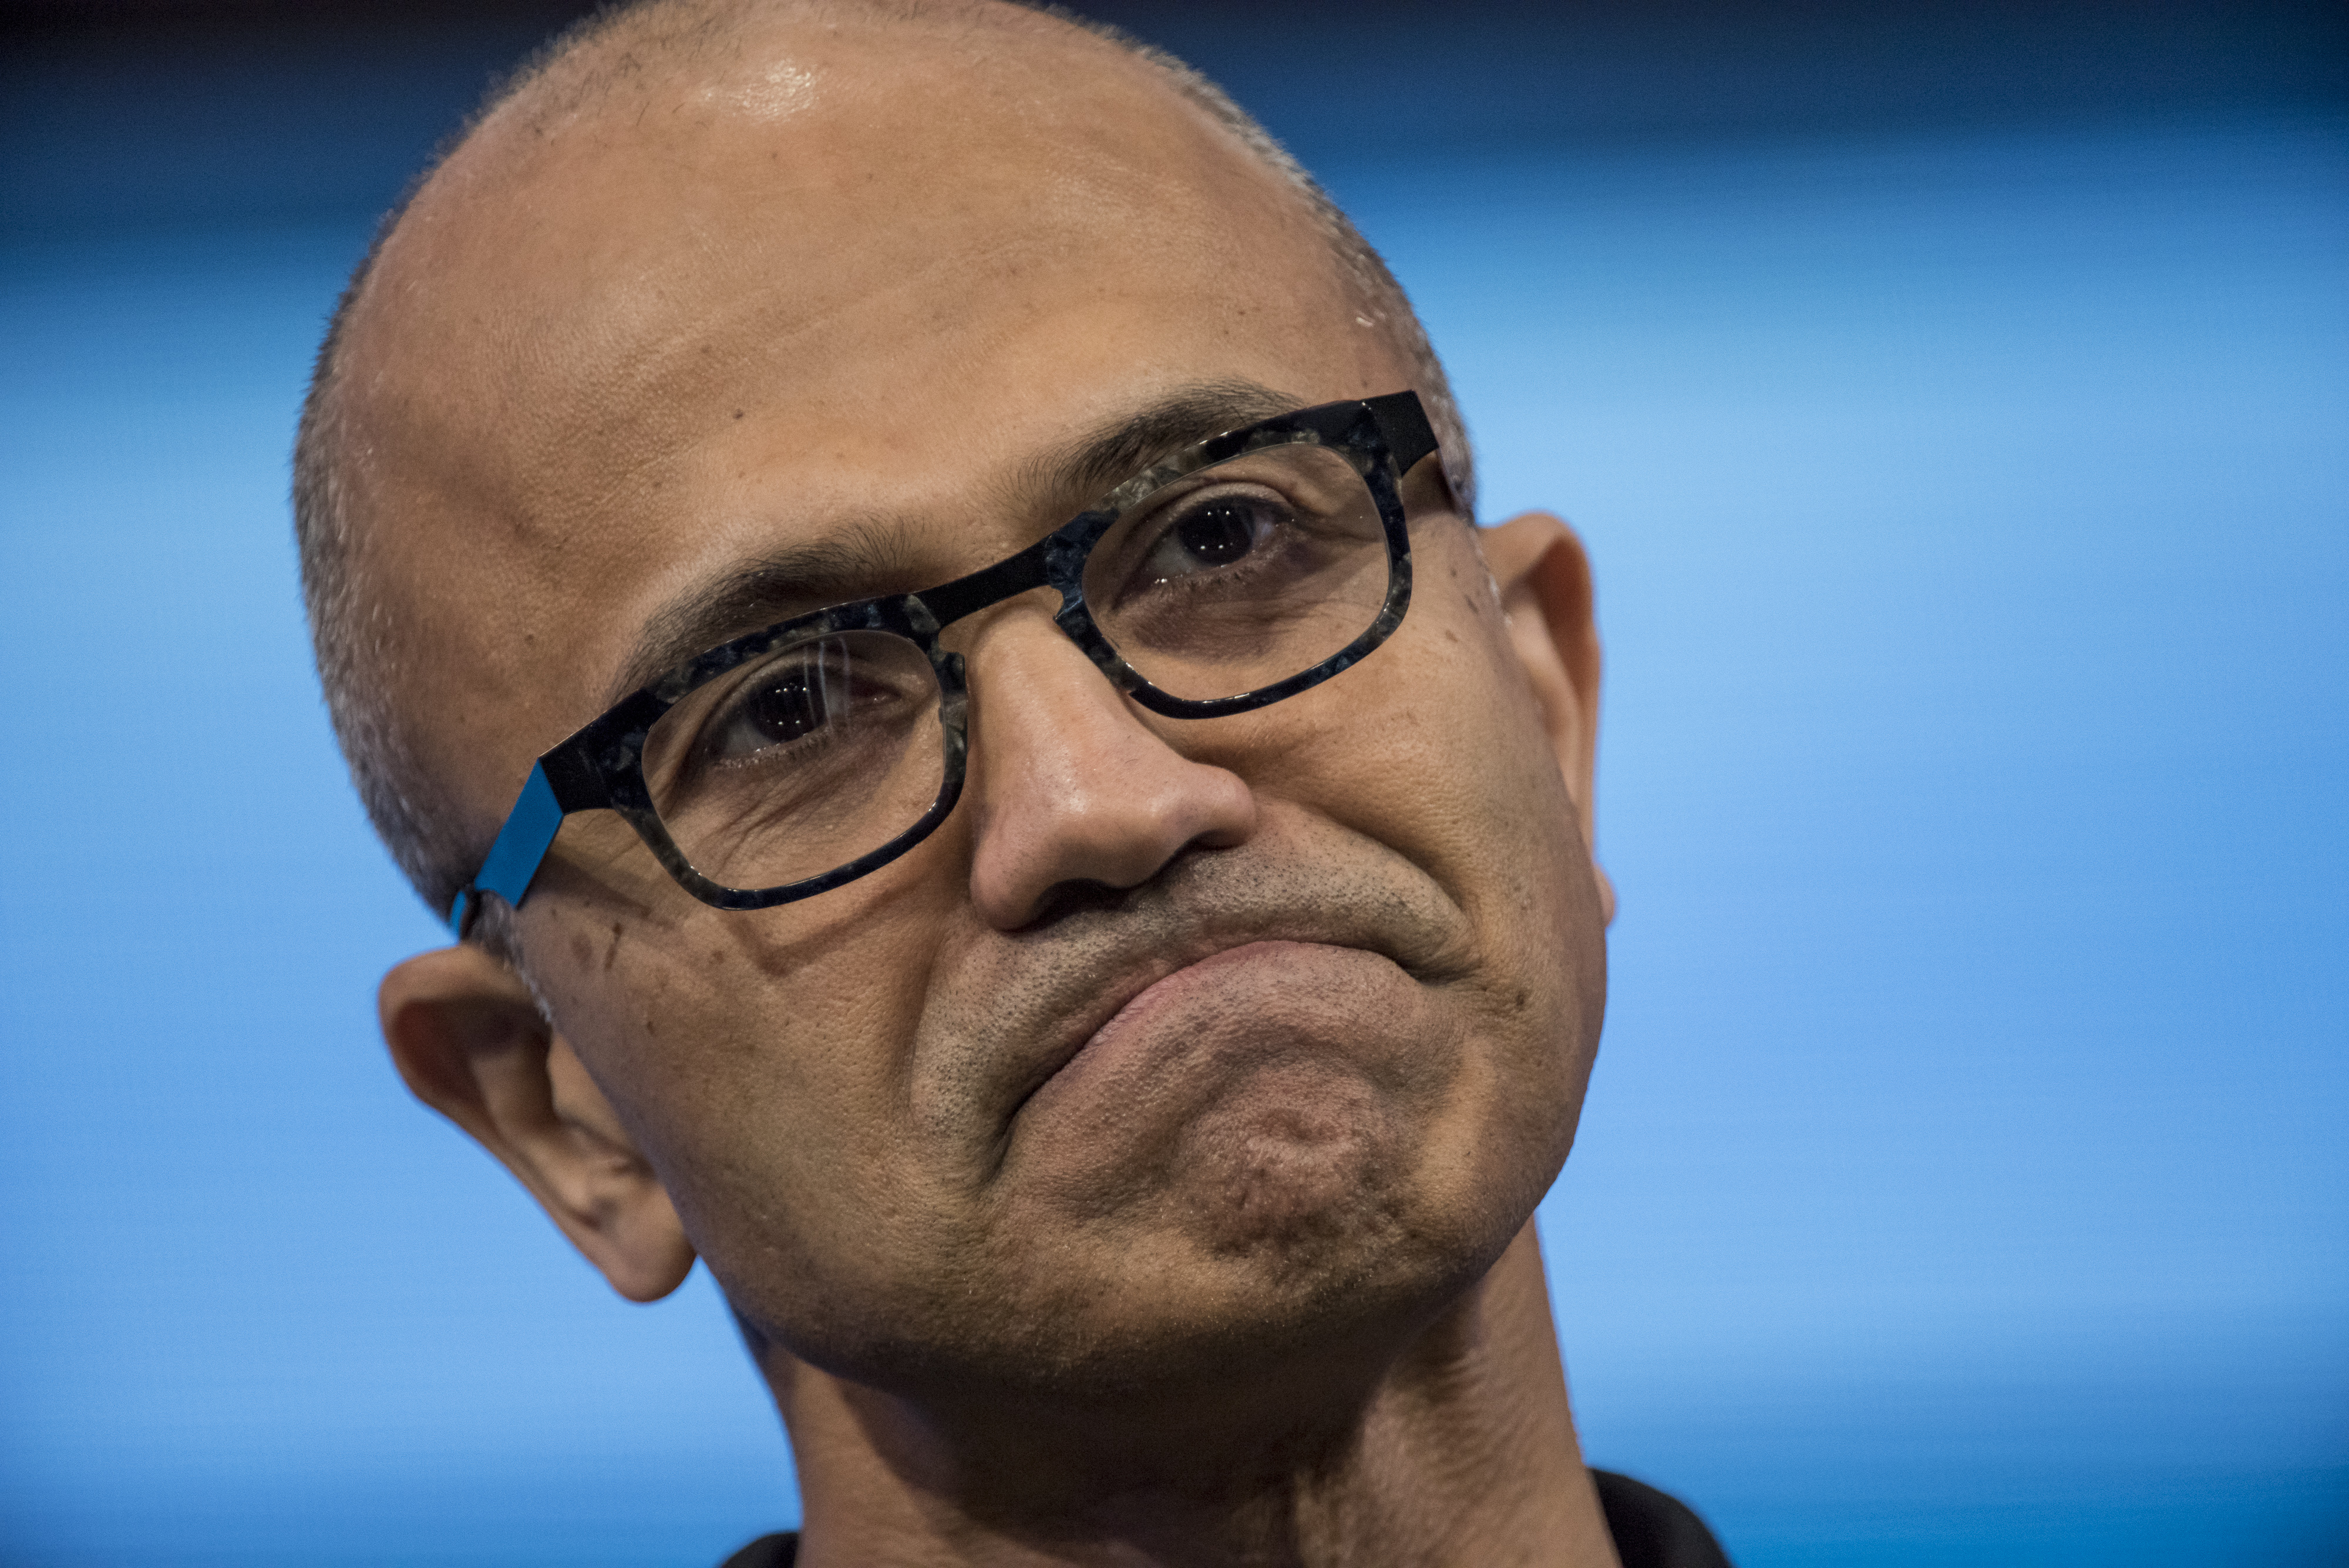 Microsoft to lay off 18,000 within the next year